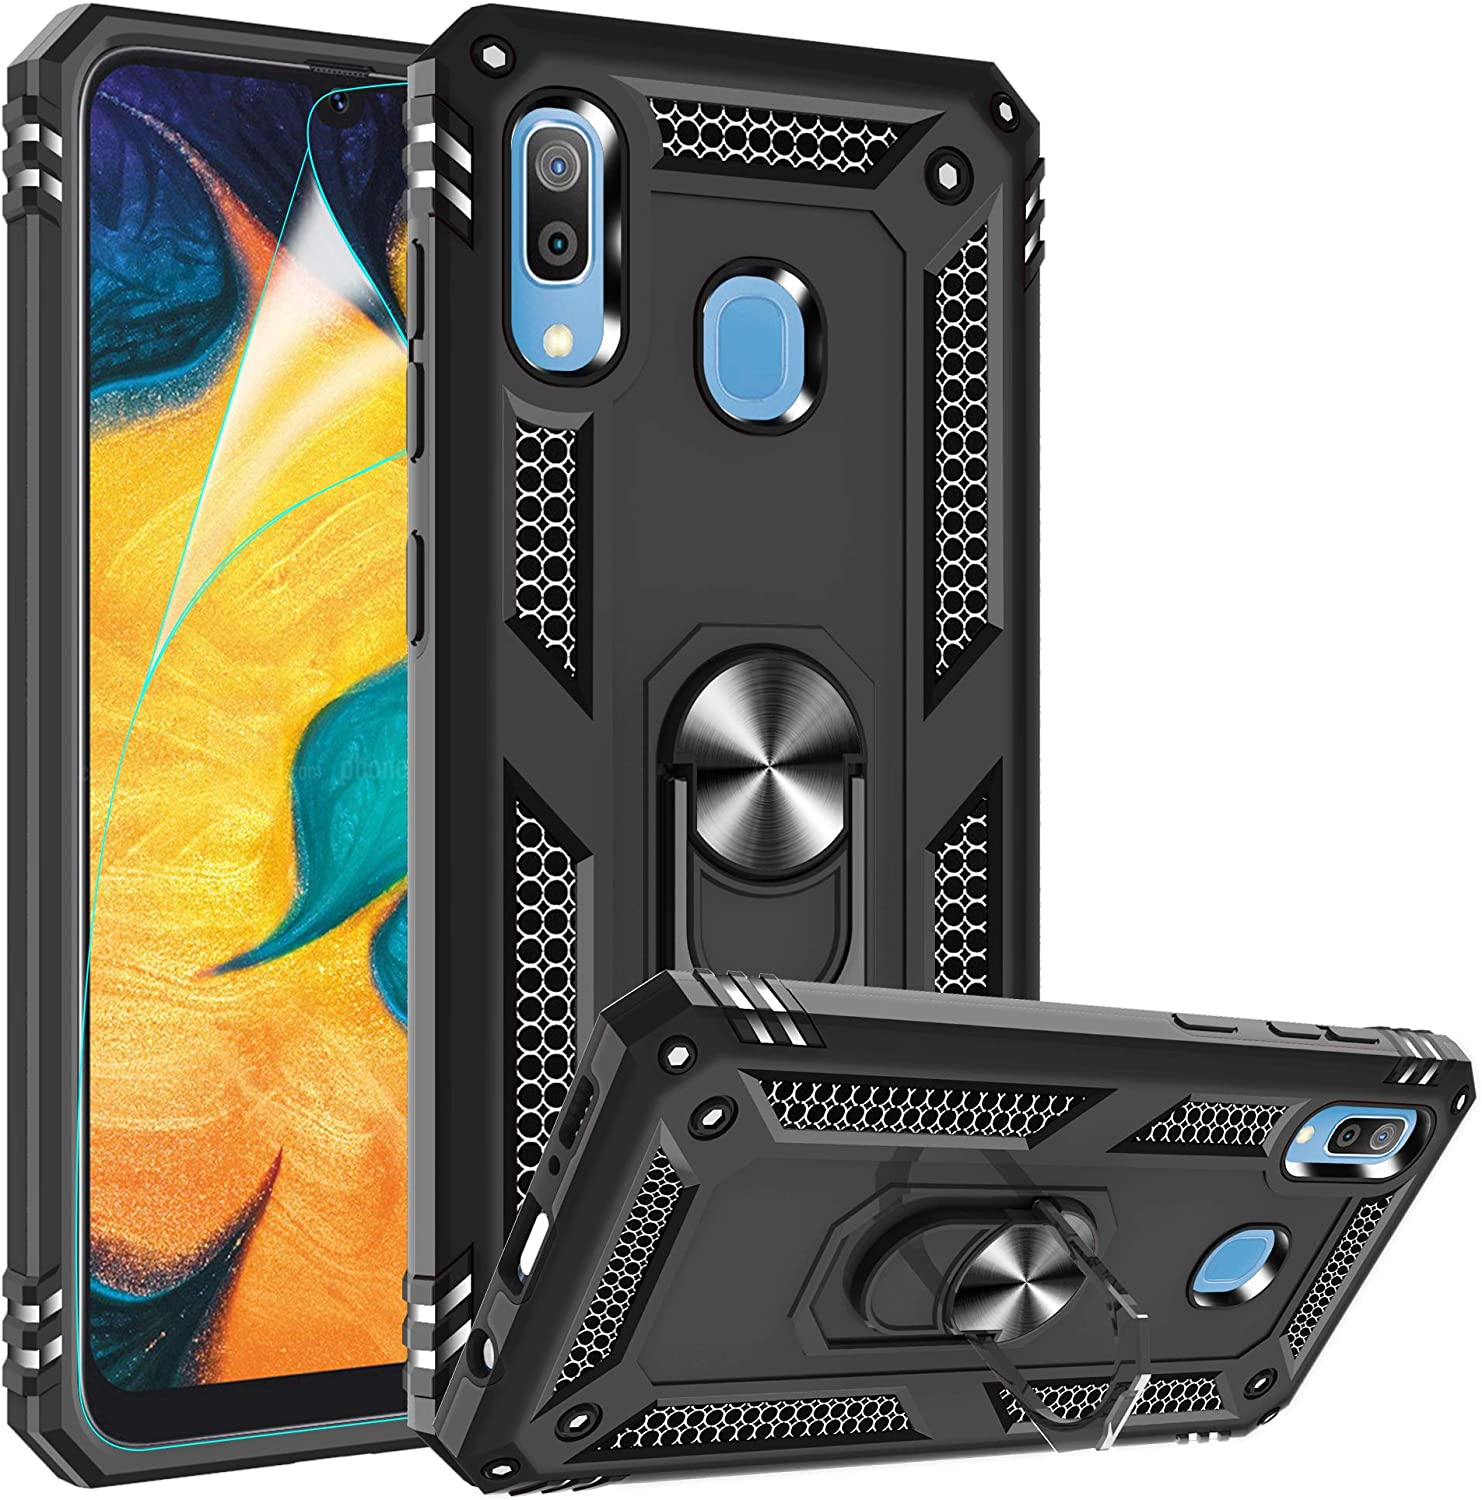 Compatible for Samsung Galaxy A20 Case, Galaxy A30 Case with HD Screen Protector, Gritup Military-Grade Shockproof Protective Phone Case with Magnetic Kickstand Ring for Samsung A20 / A30 Black